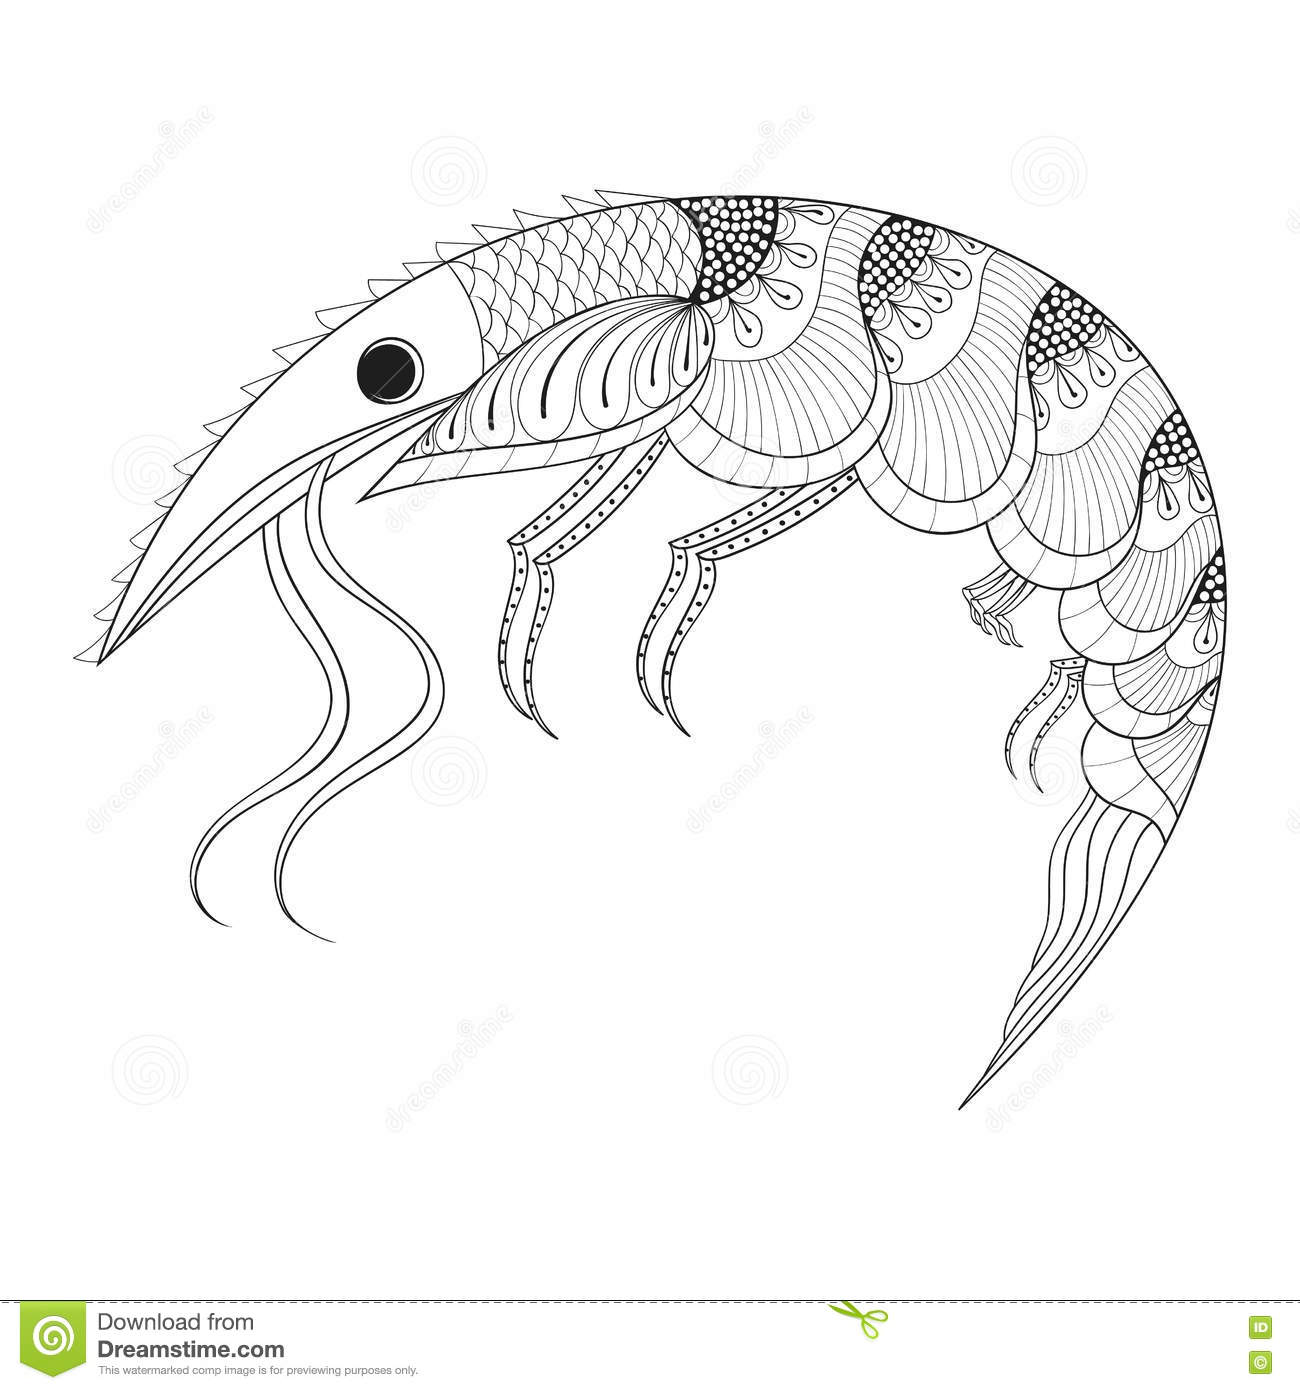 Coloring page 747 - Hand Drawn Zentangle Shrimp For Adult Anti Stress Coloring Pages